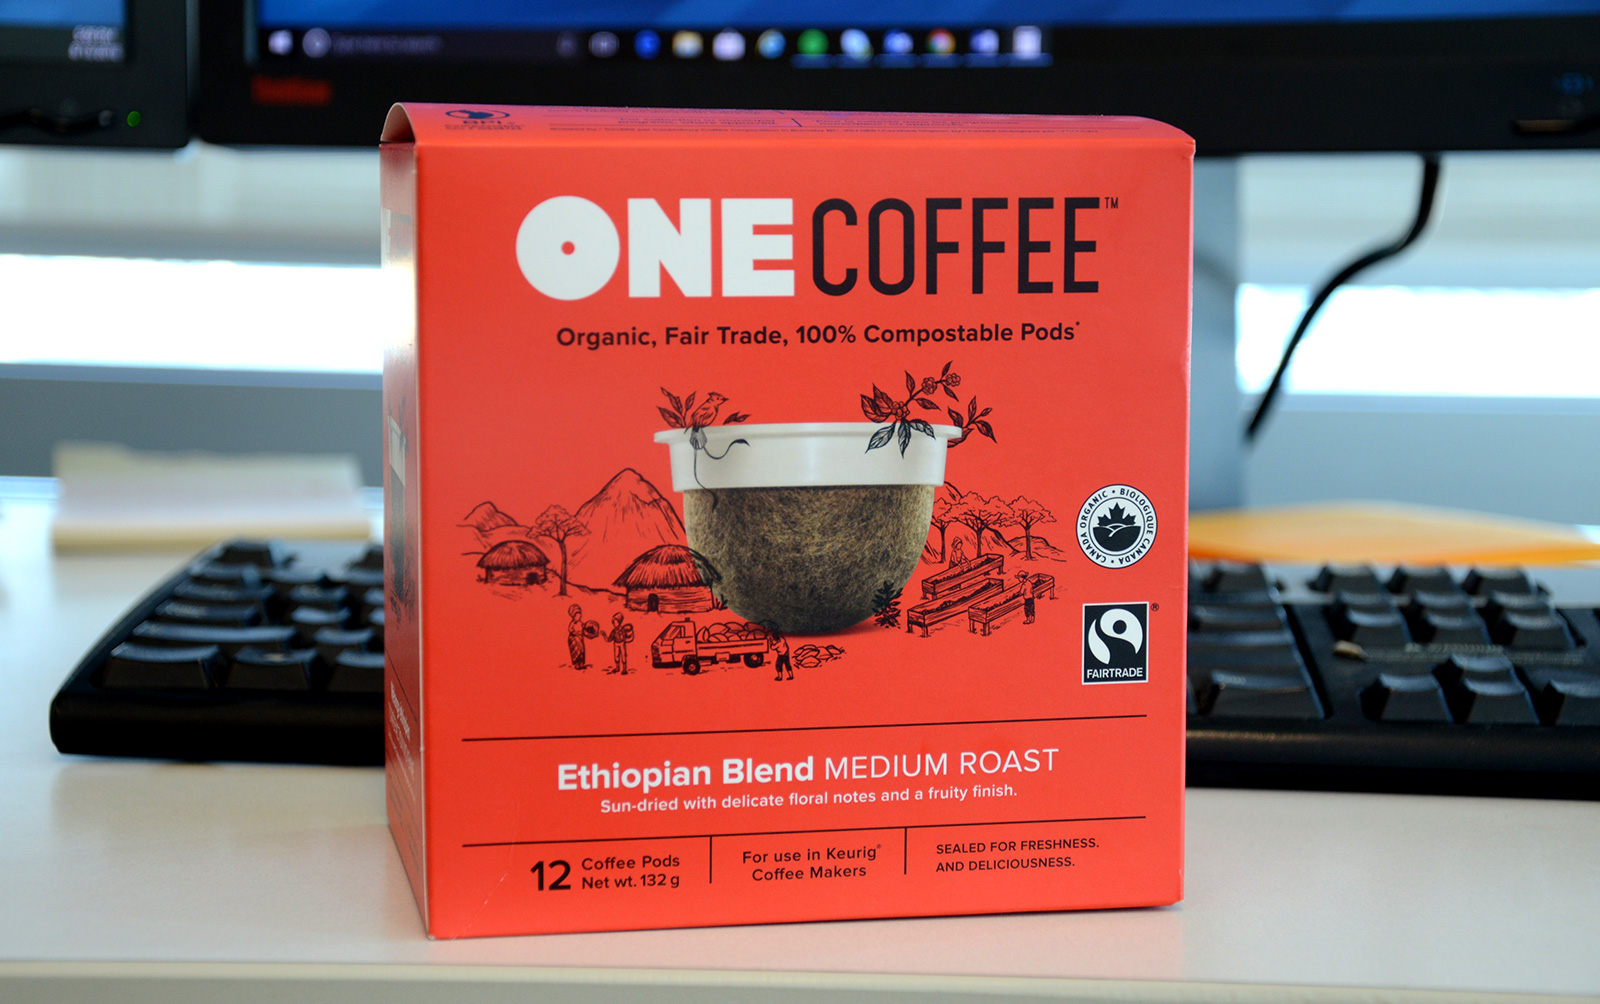 One Coffee K-Cup Coffee Pods